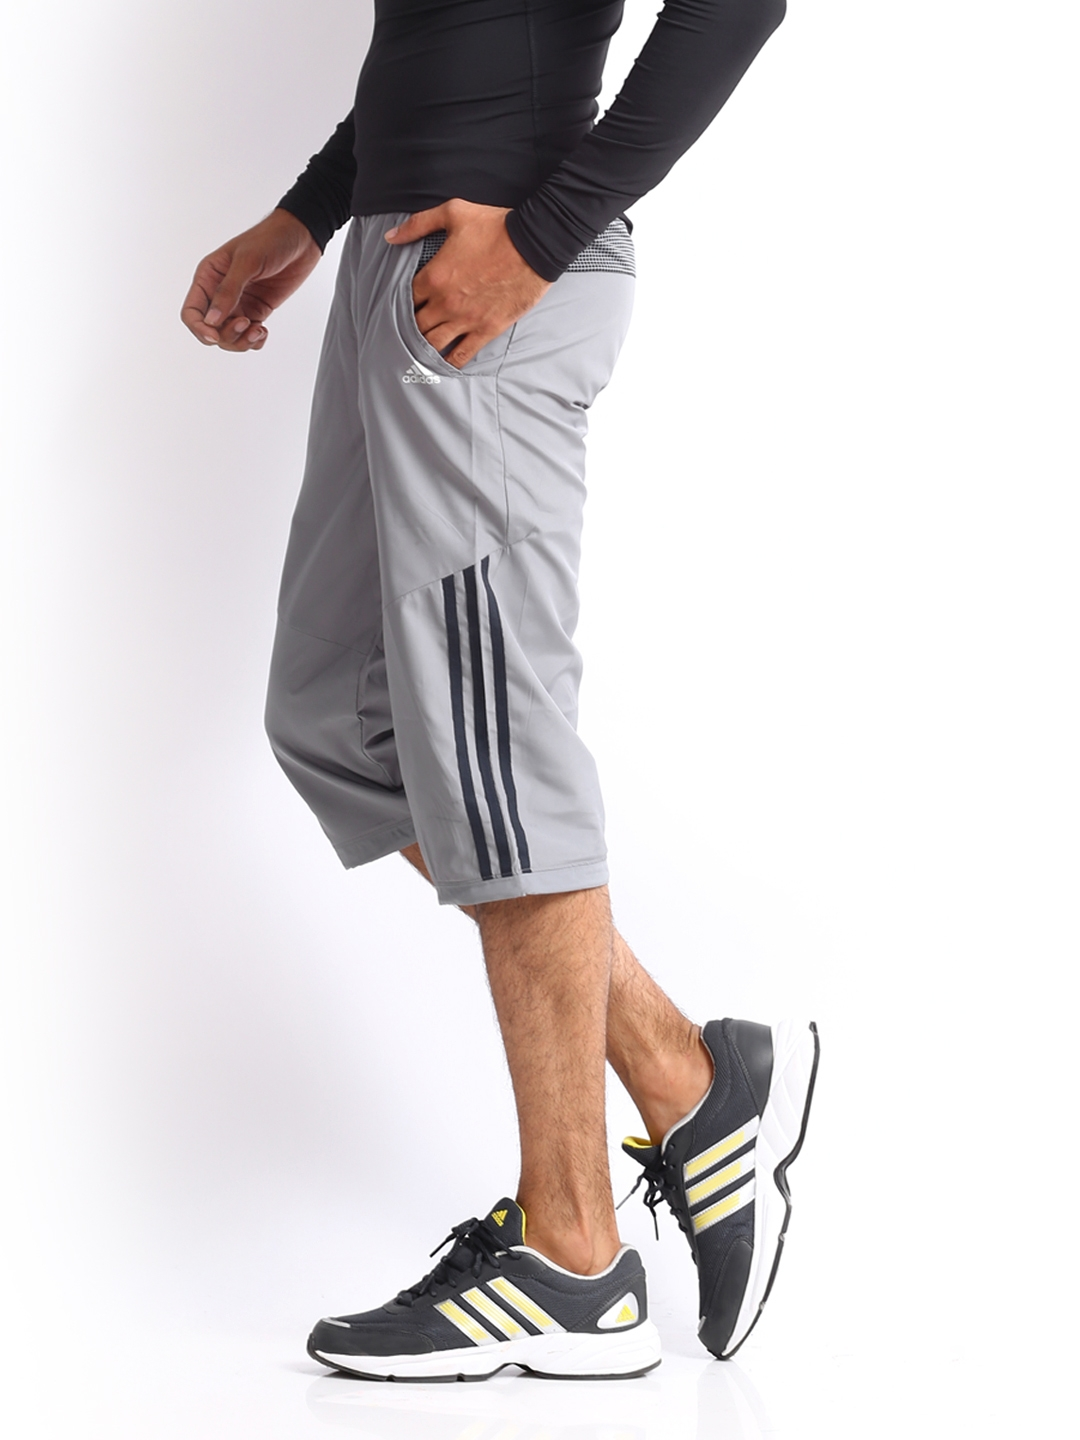 Buy ADIDAS Men Grey 3 4 Length Track Pants - Shorts for Men 252823 ... 8a580a7e69a7